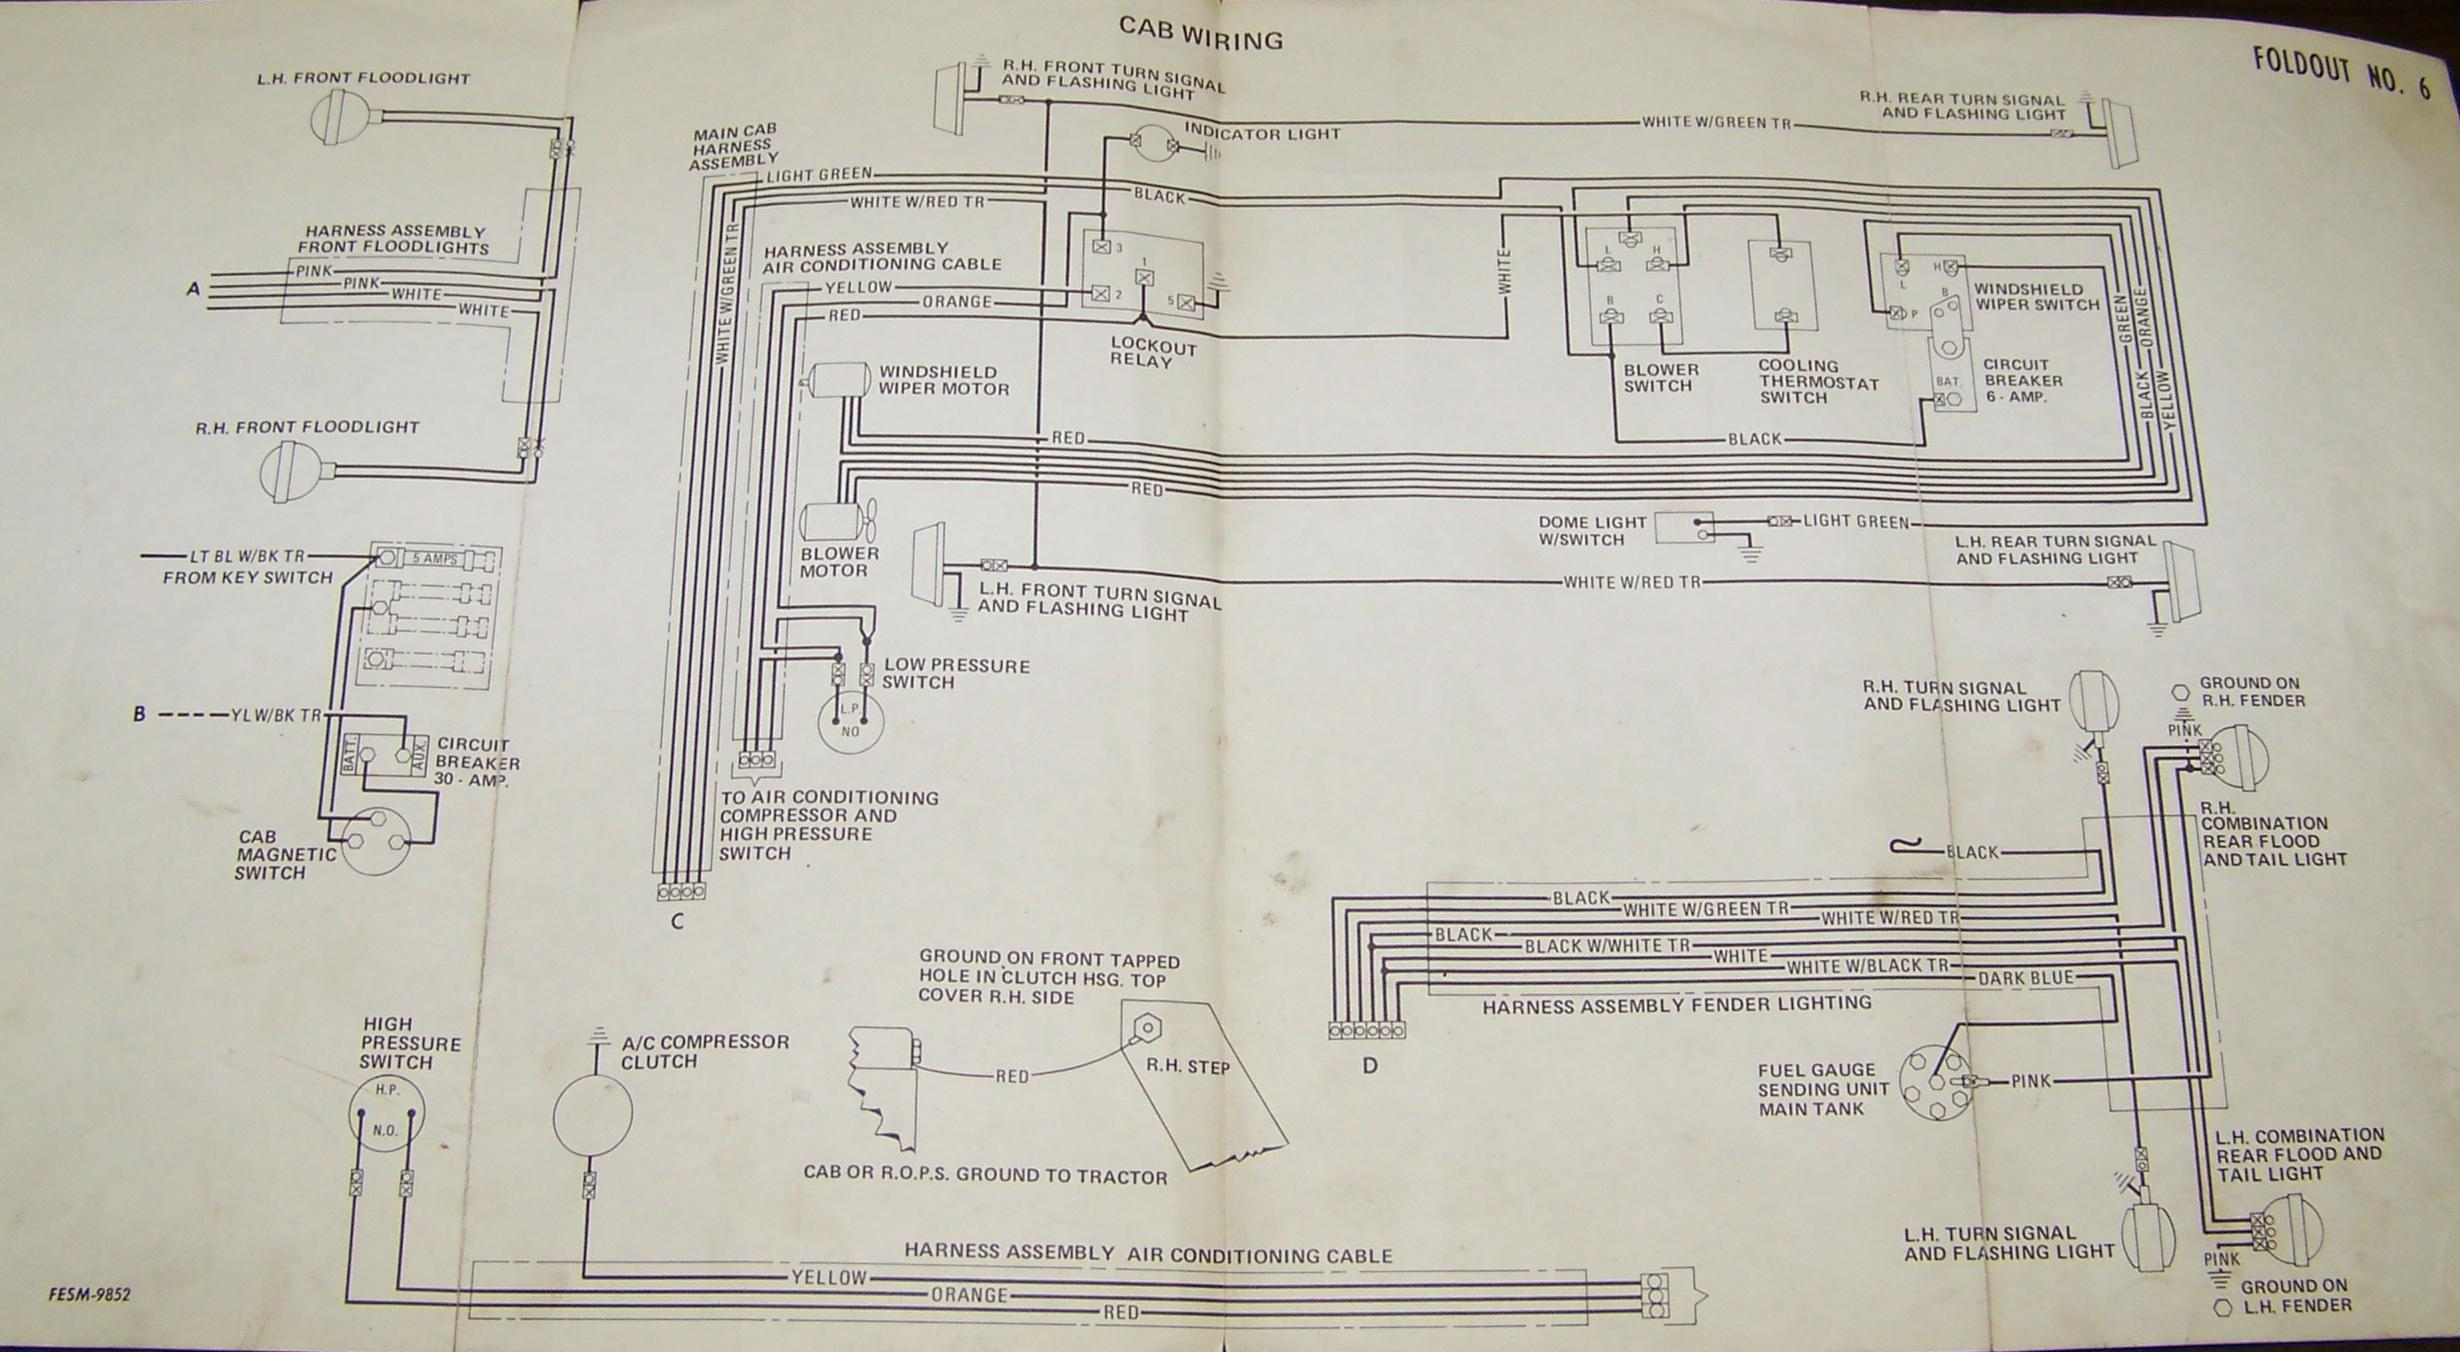 86series6 carter & gruenewald co inc ih farmall tractor electrical wiring diagram for 656 farmall at couponss.co